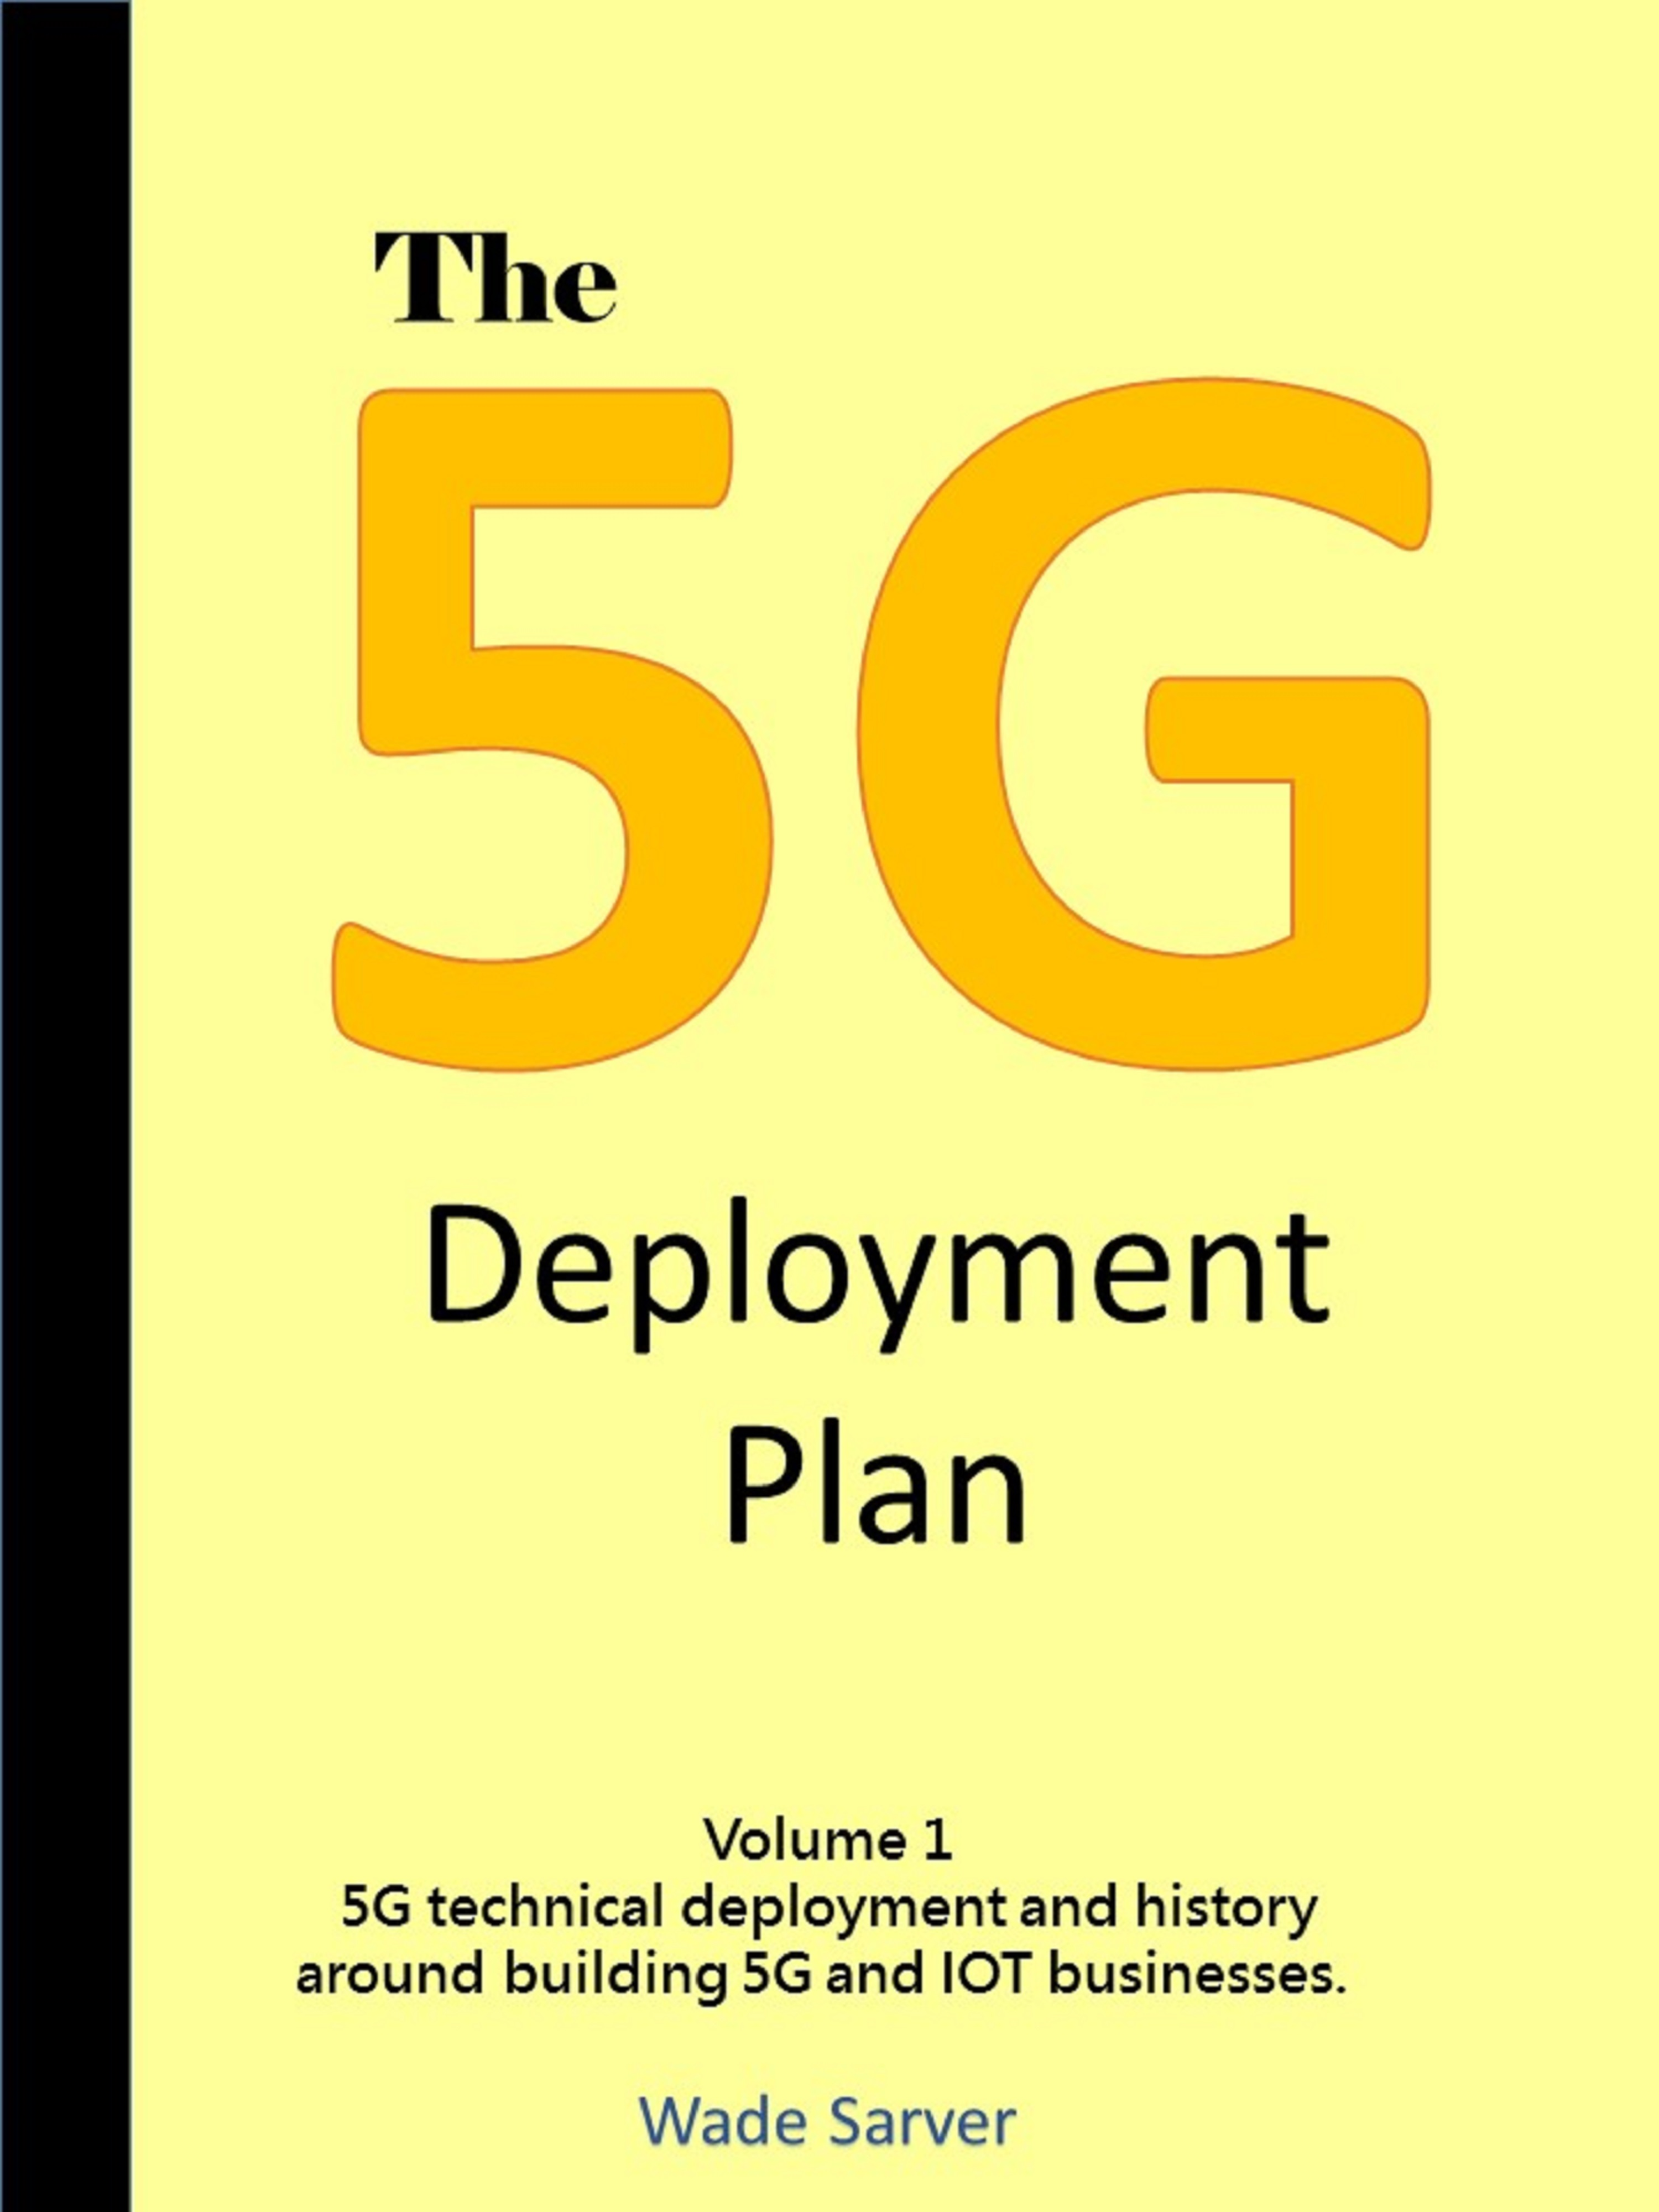 The 5G Deployment Plan Book Release!